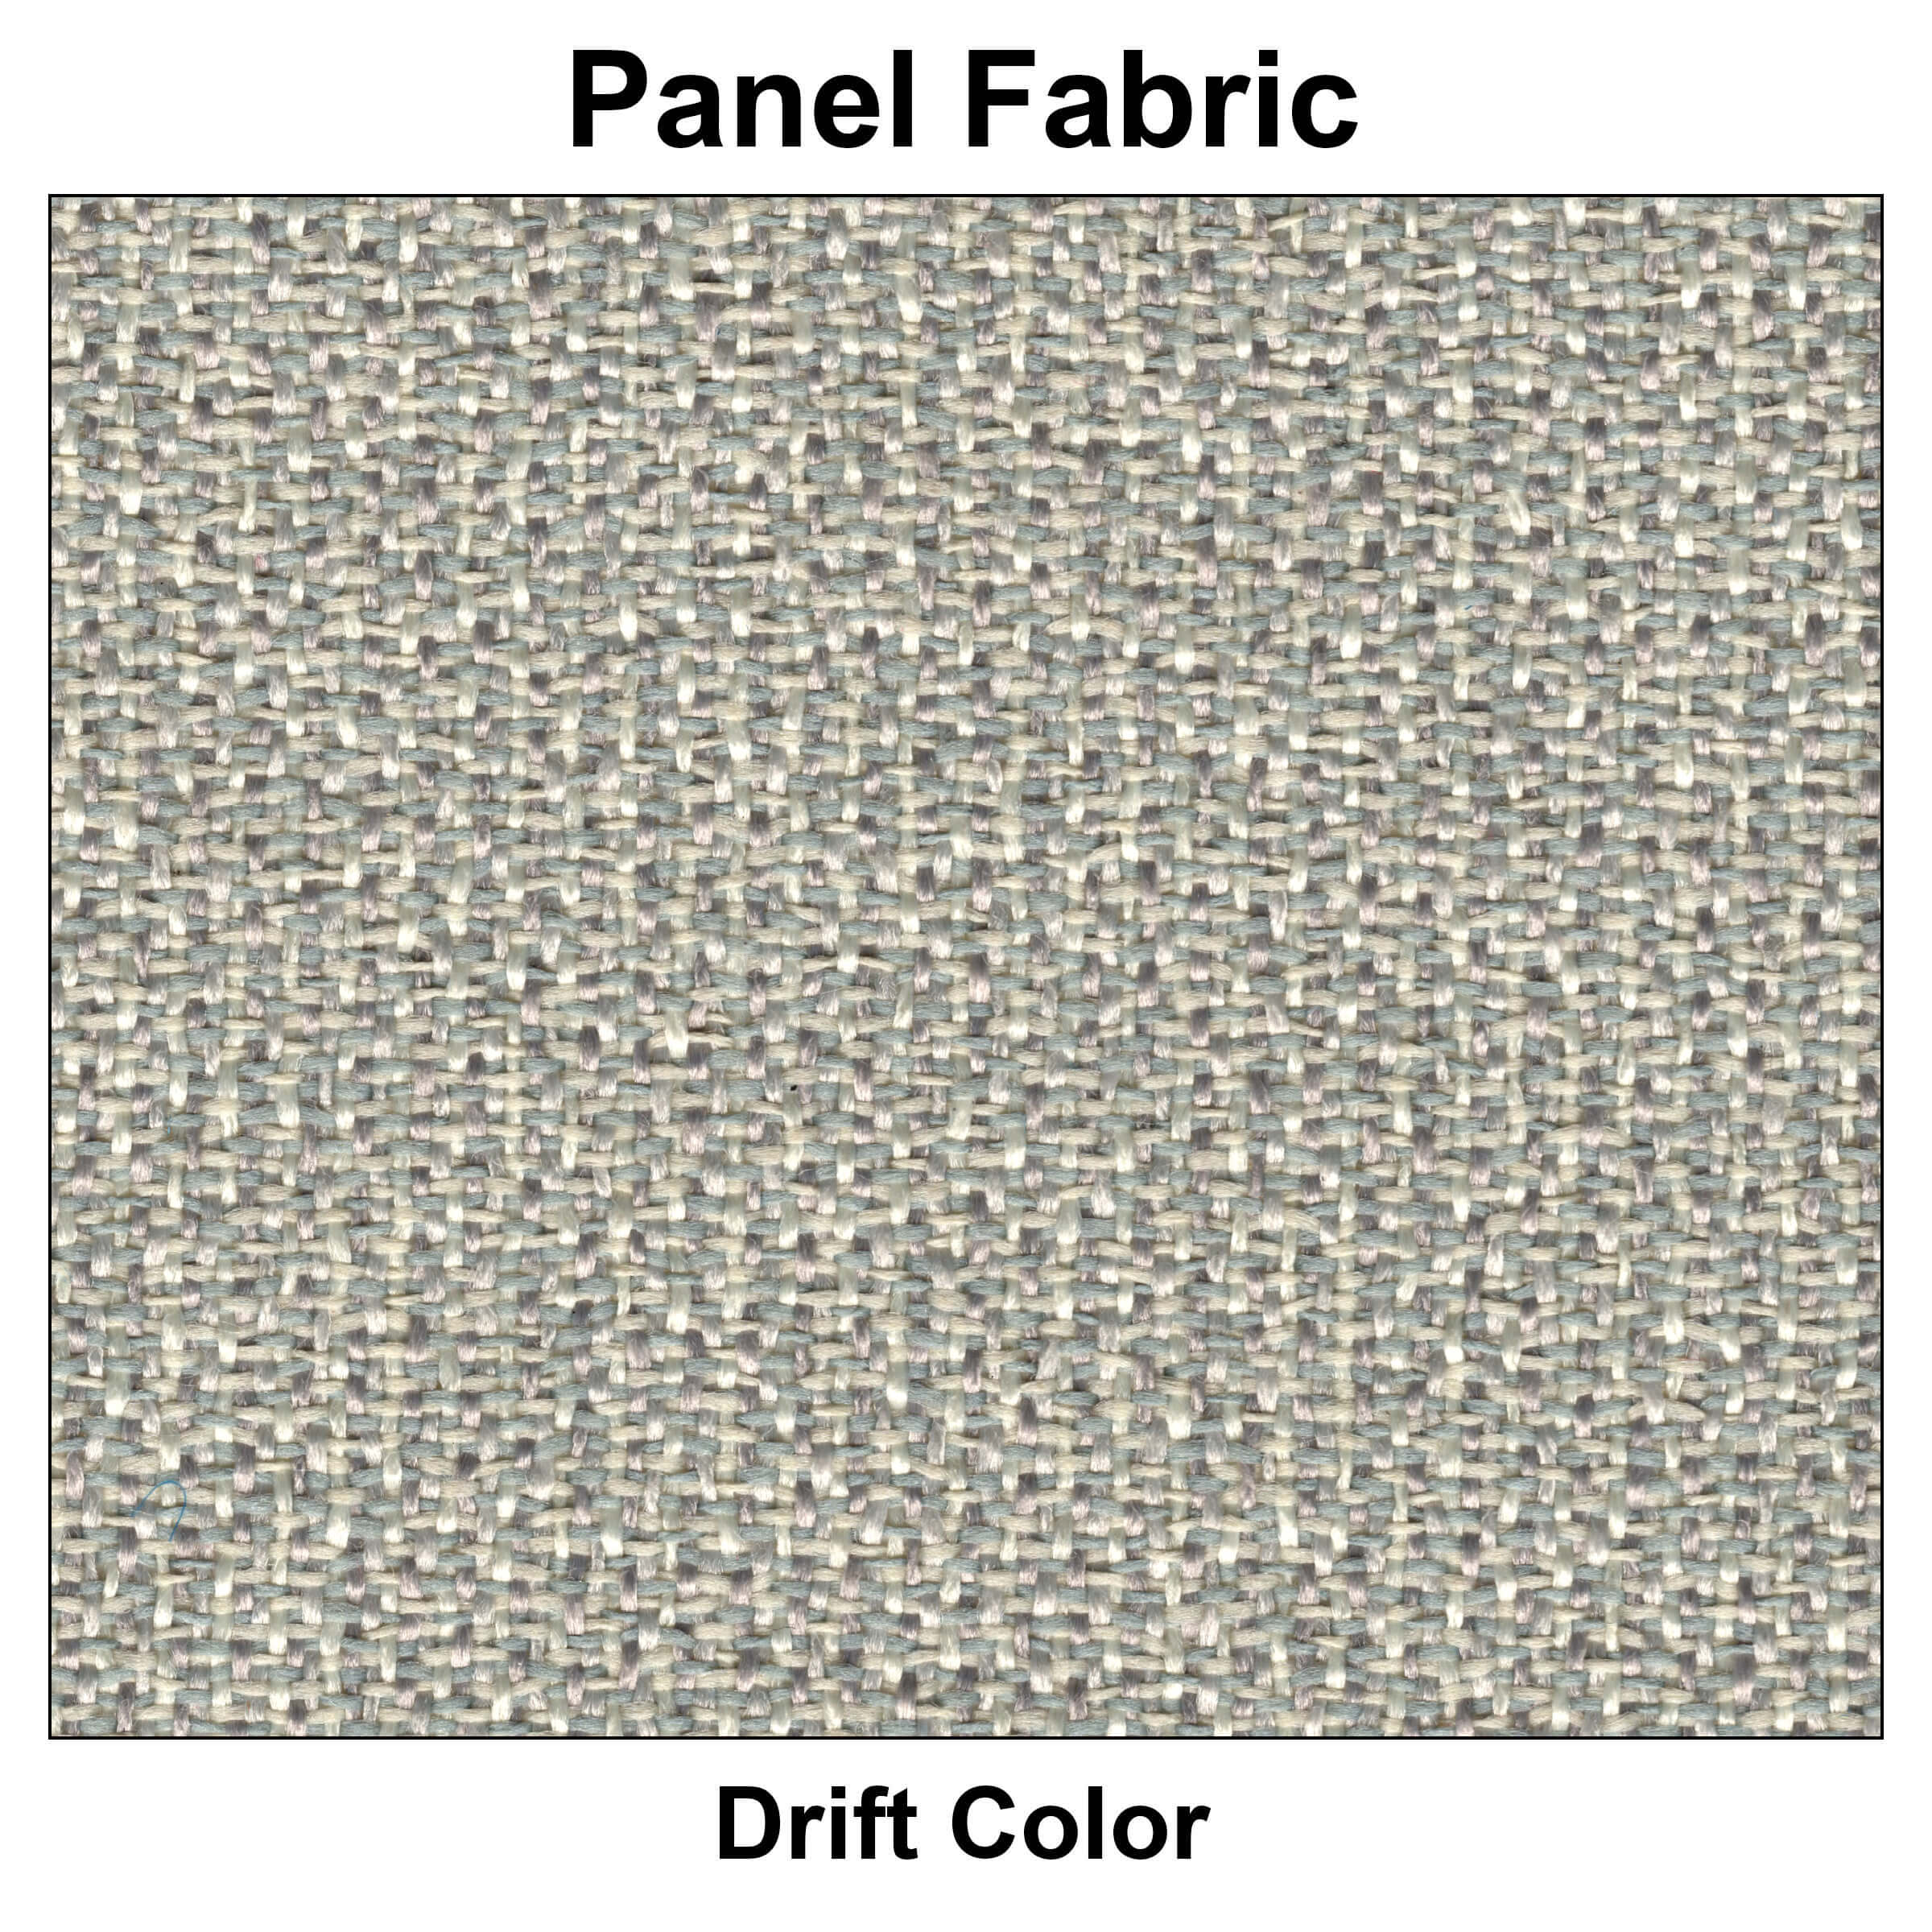 Modular office desk furniture fabric 1 2 3 4 5 6 7 8 9 10 11